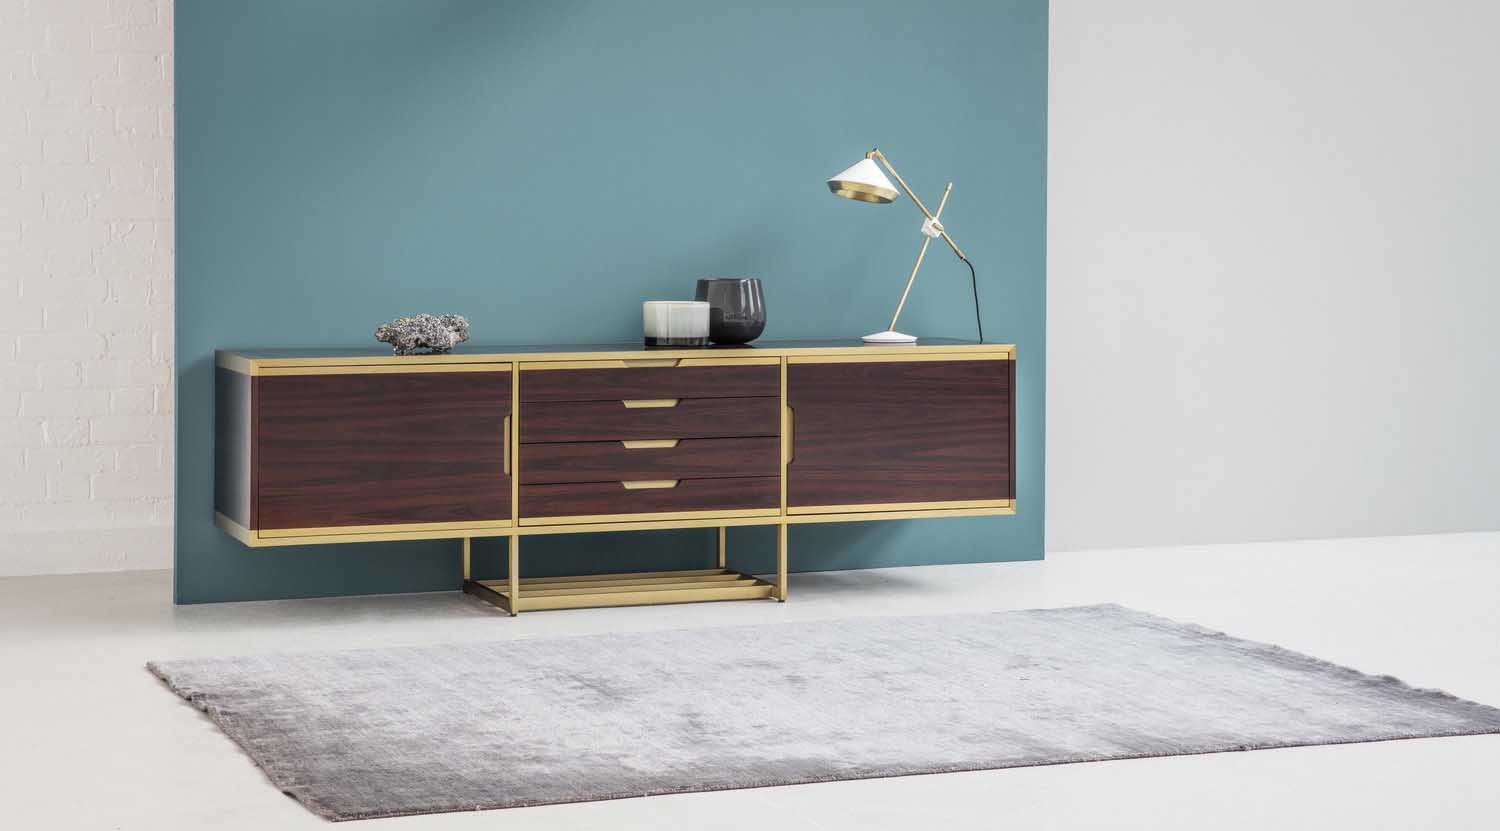 Bert Frank furniture_Sideboard_Credenza_mid-century modern furniture_Decca London